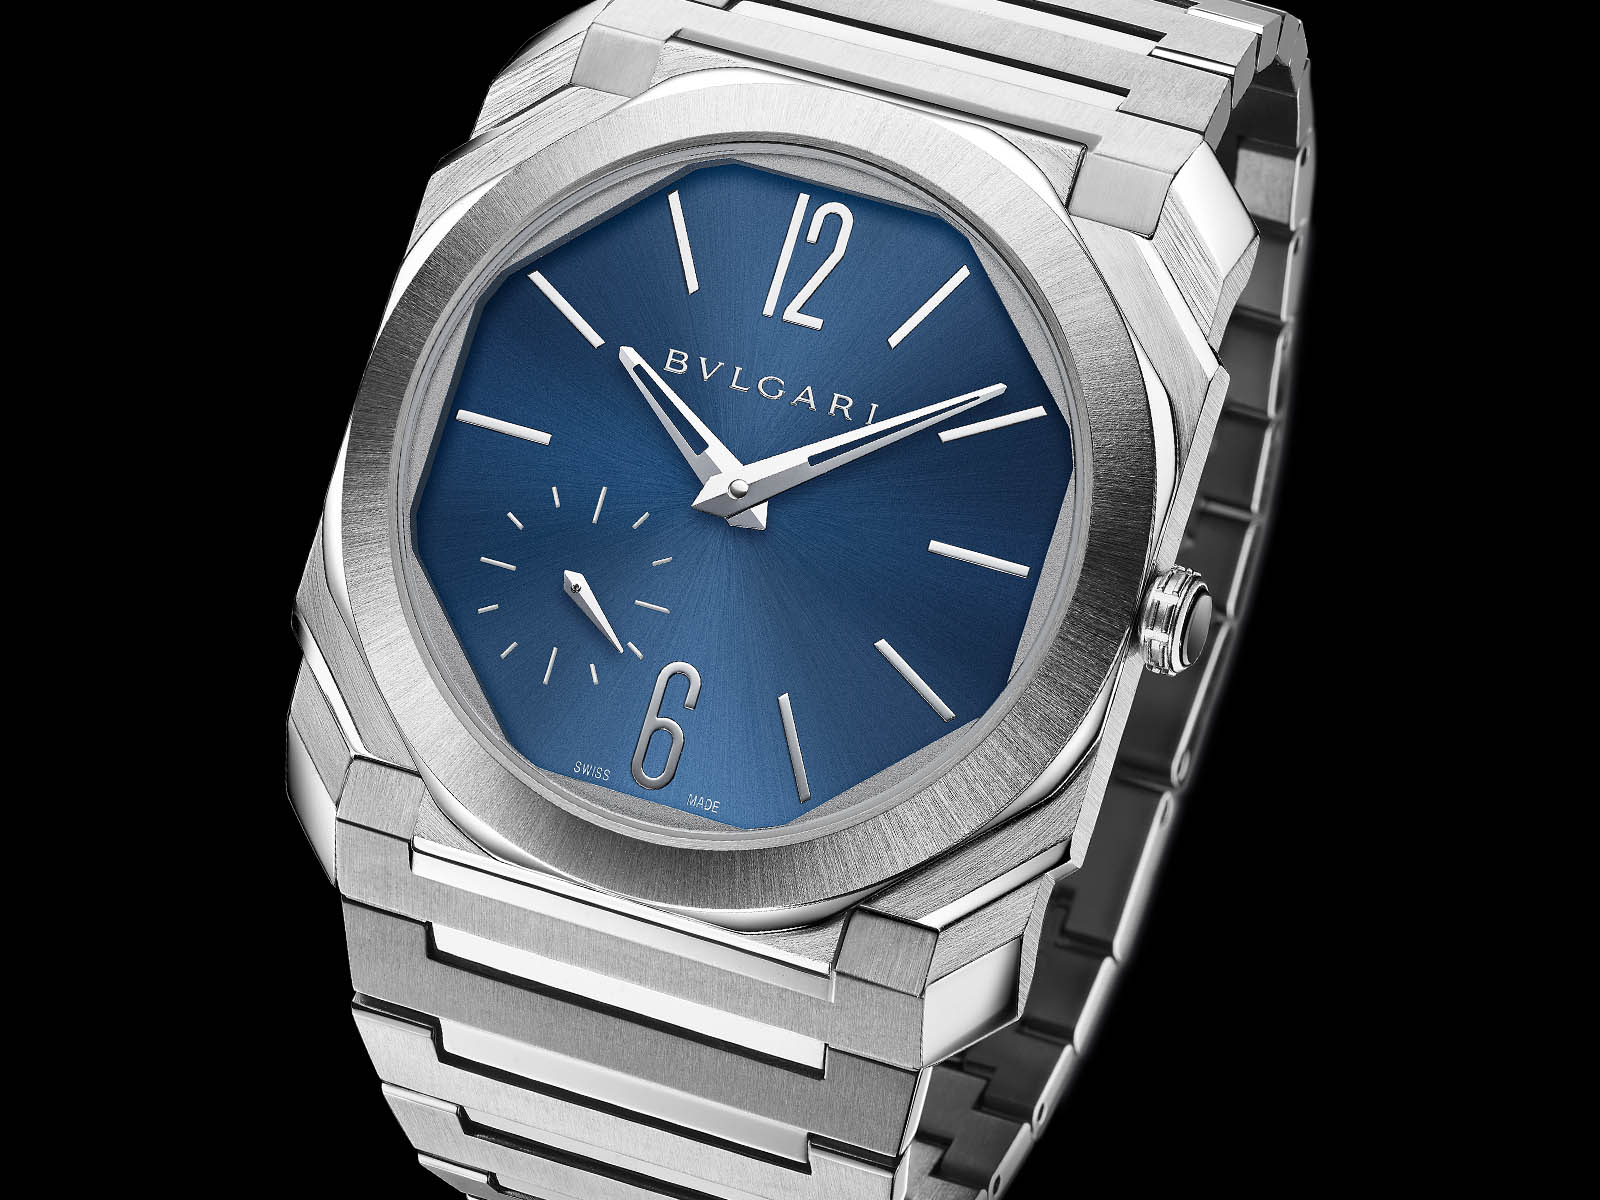 103431-bvlgari-octo-finissimo-blue-dial-in-steel-3.jpg